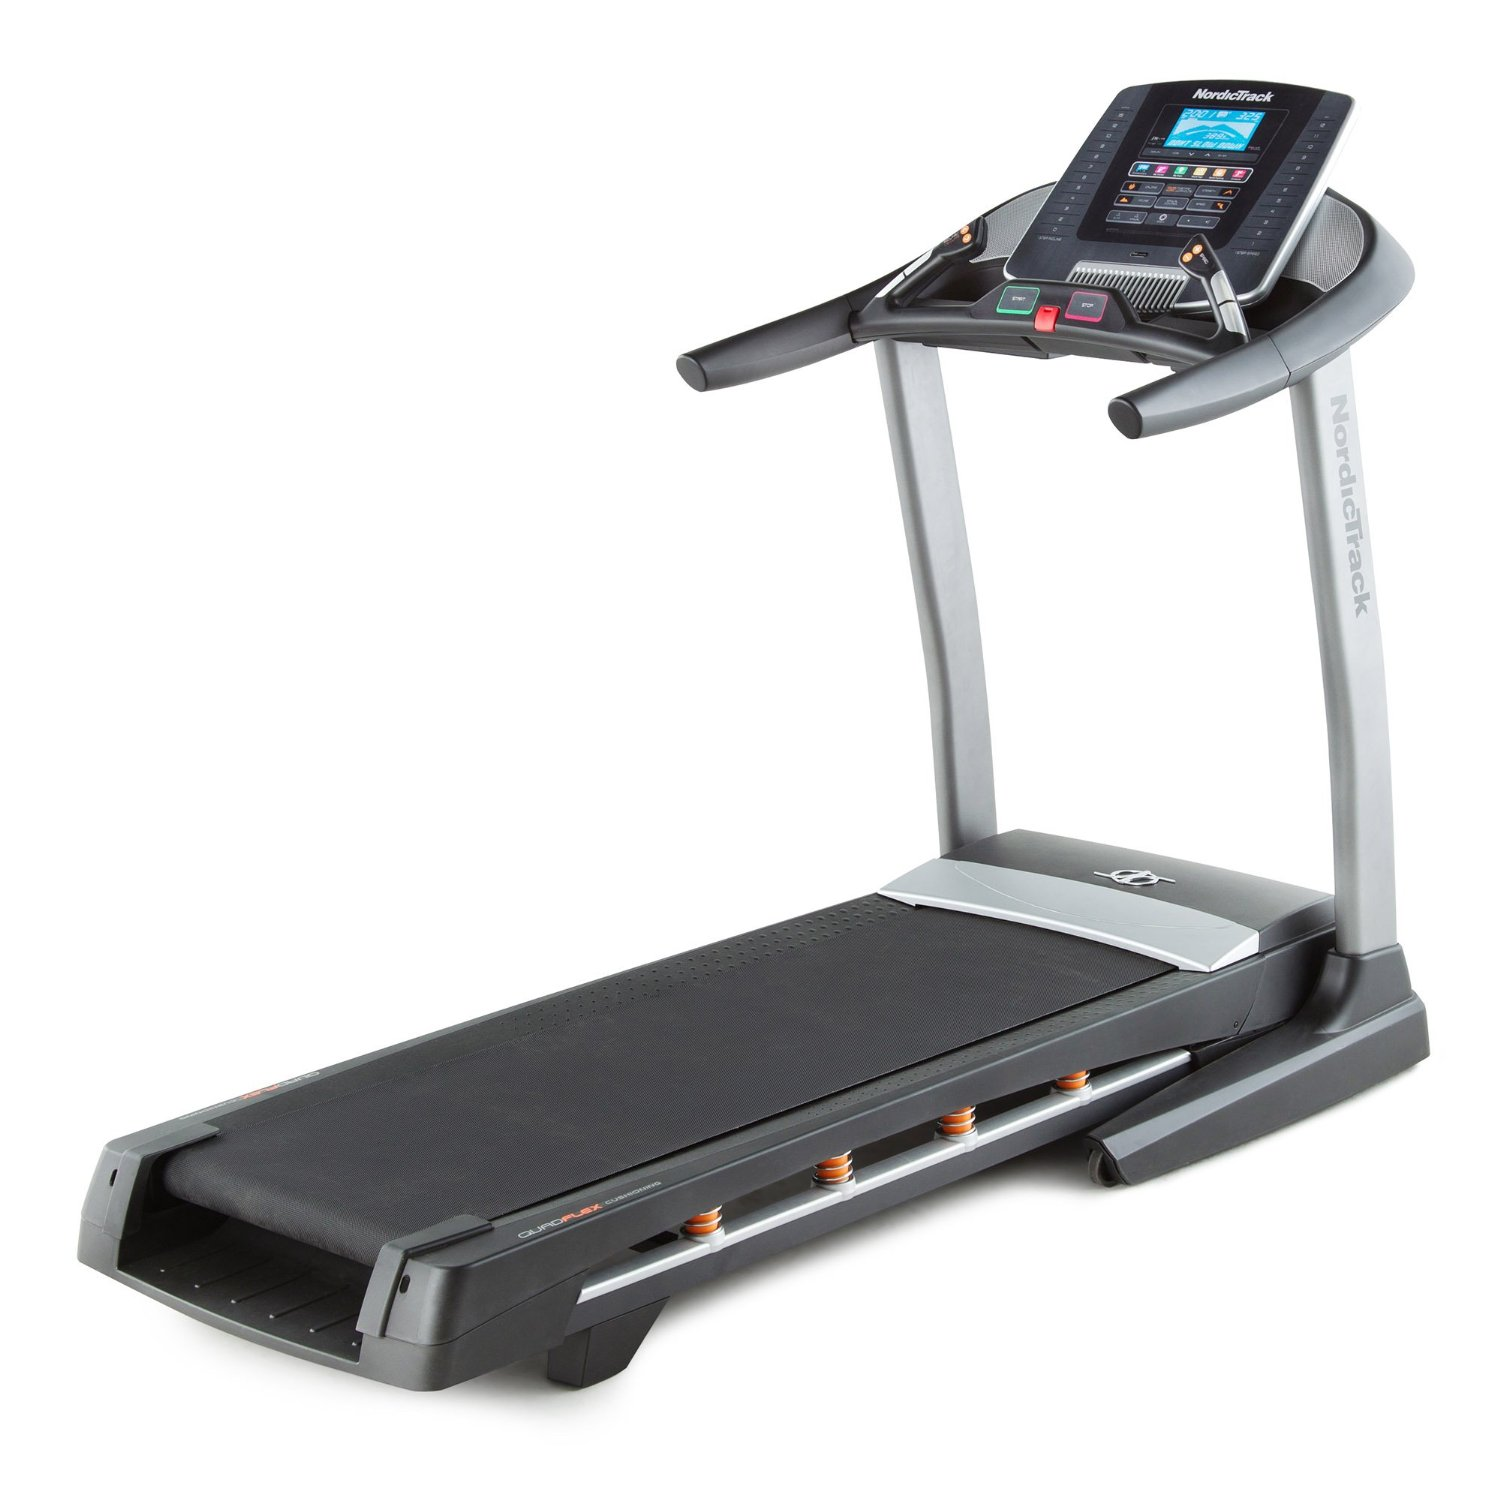 Best Treadmills For Home >> NordicTrack T17.2 Folding Treadmill Review - Latest Fitness Reviews | Fitness Machine ...